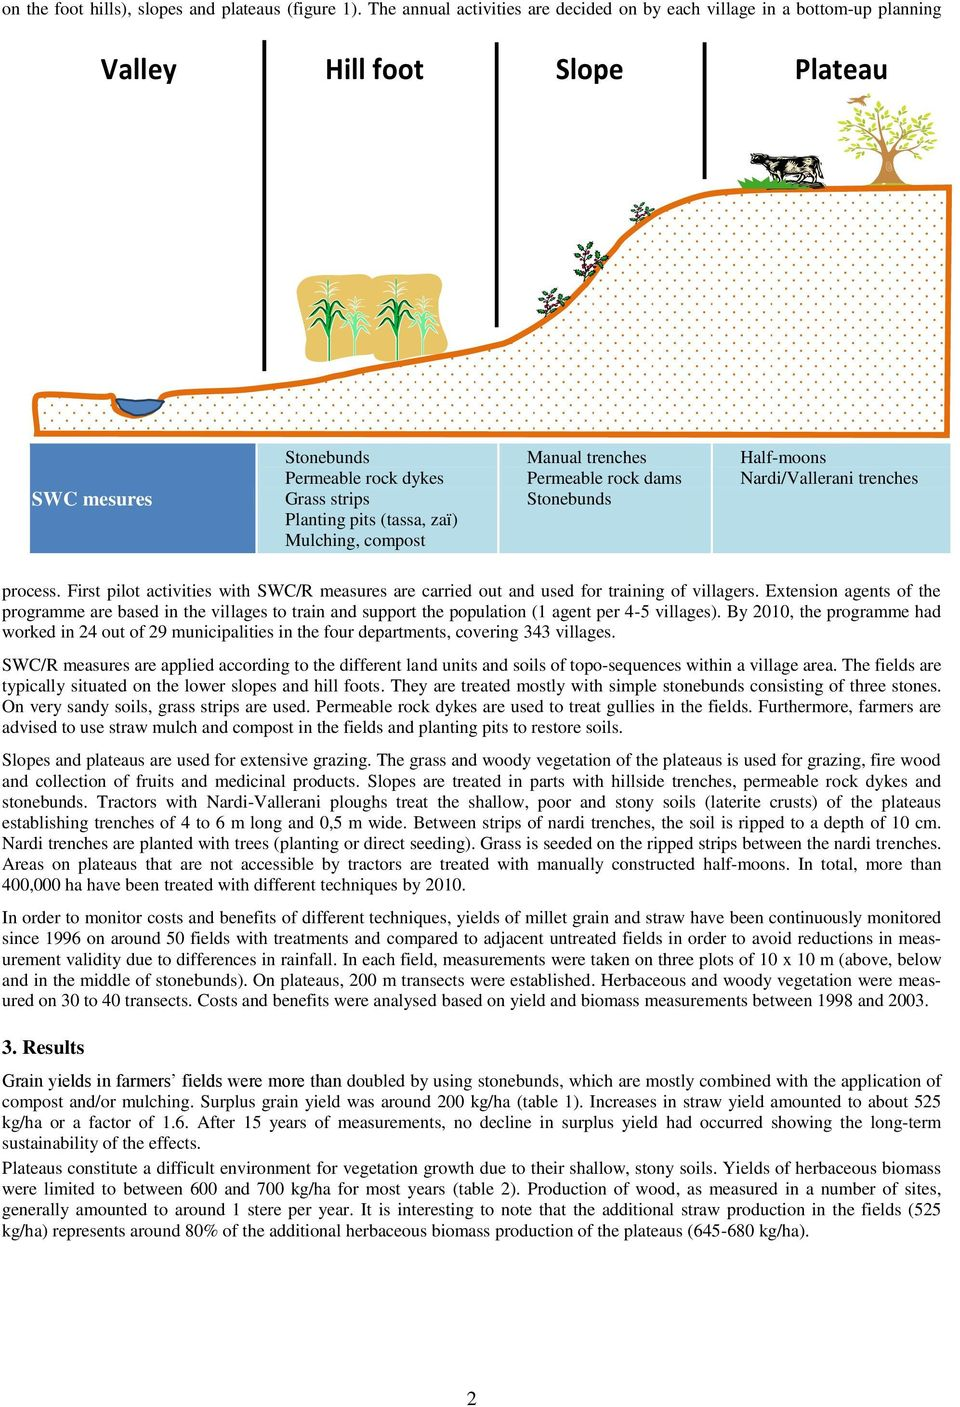 Mulching, compost Manual trenches Permeable rock dams Stonebunds Half-moons Nardi/Vallerani trenches Figure 1: Typical toposequence and applied SWC measures process.